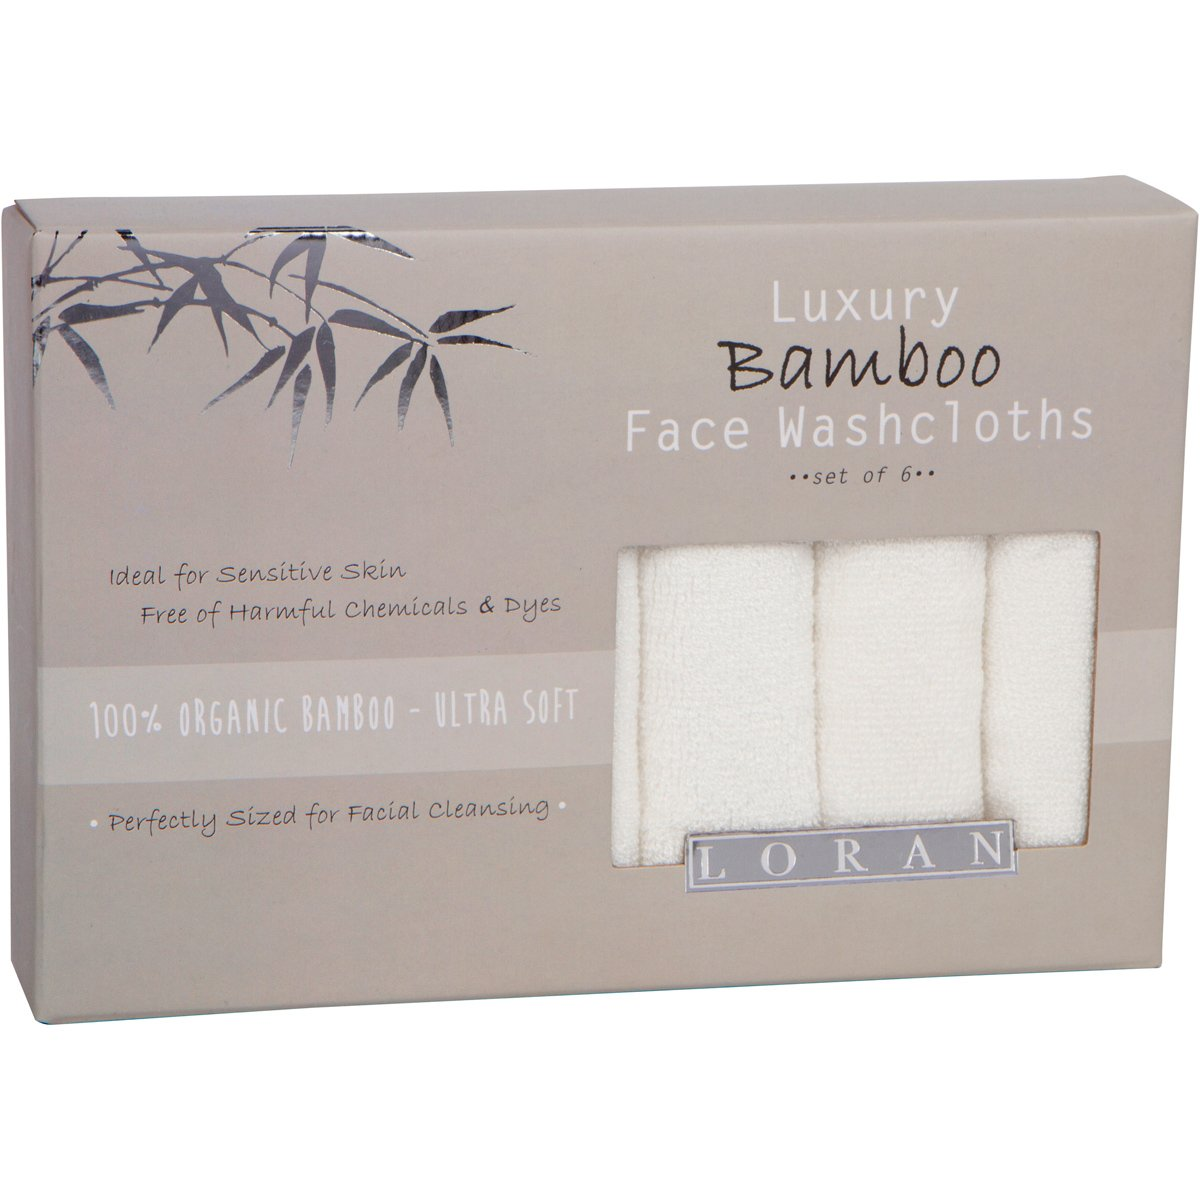 Luxury Bamboo Facial Washcloths, Set of 6, white, 10''x10'' by LORAN